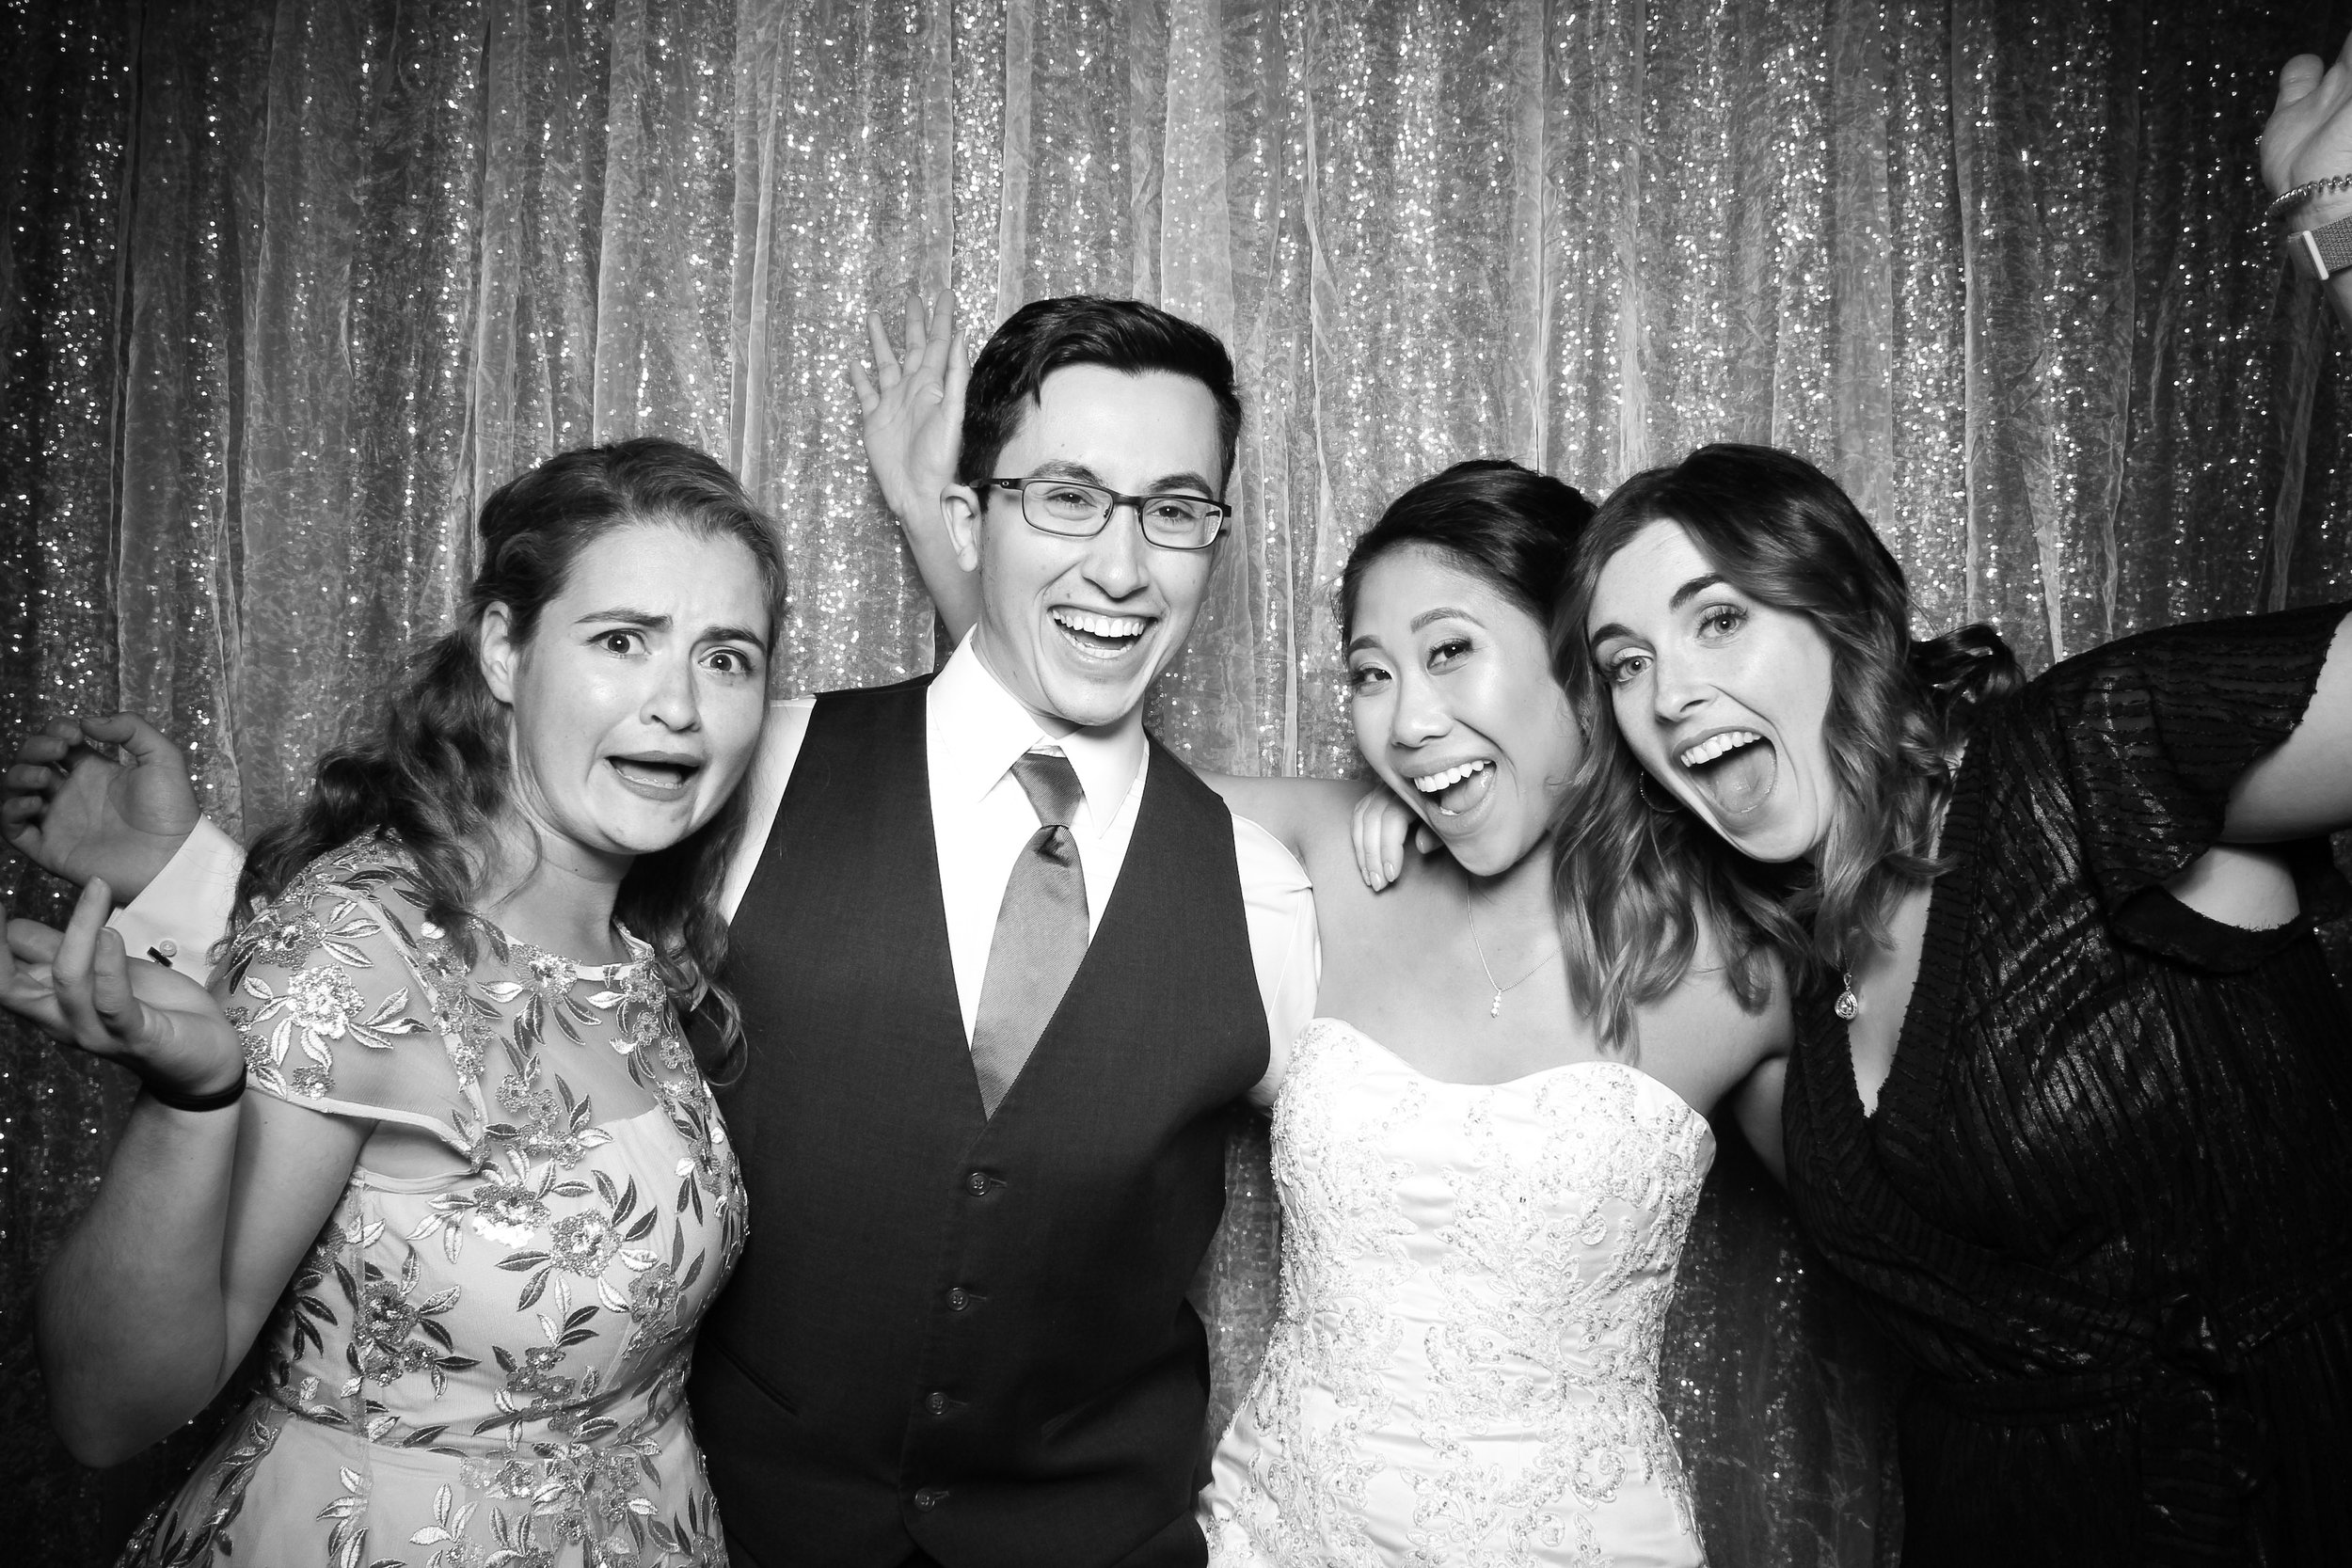 Chicago_Vintage_Wedding_Photobooth_Glen_Club_24.jpg